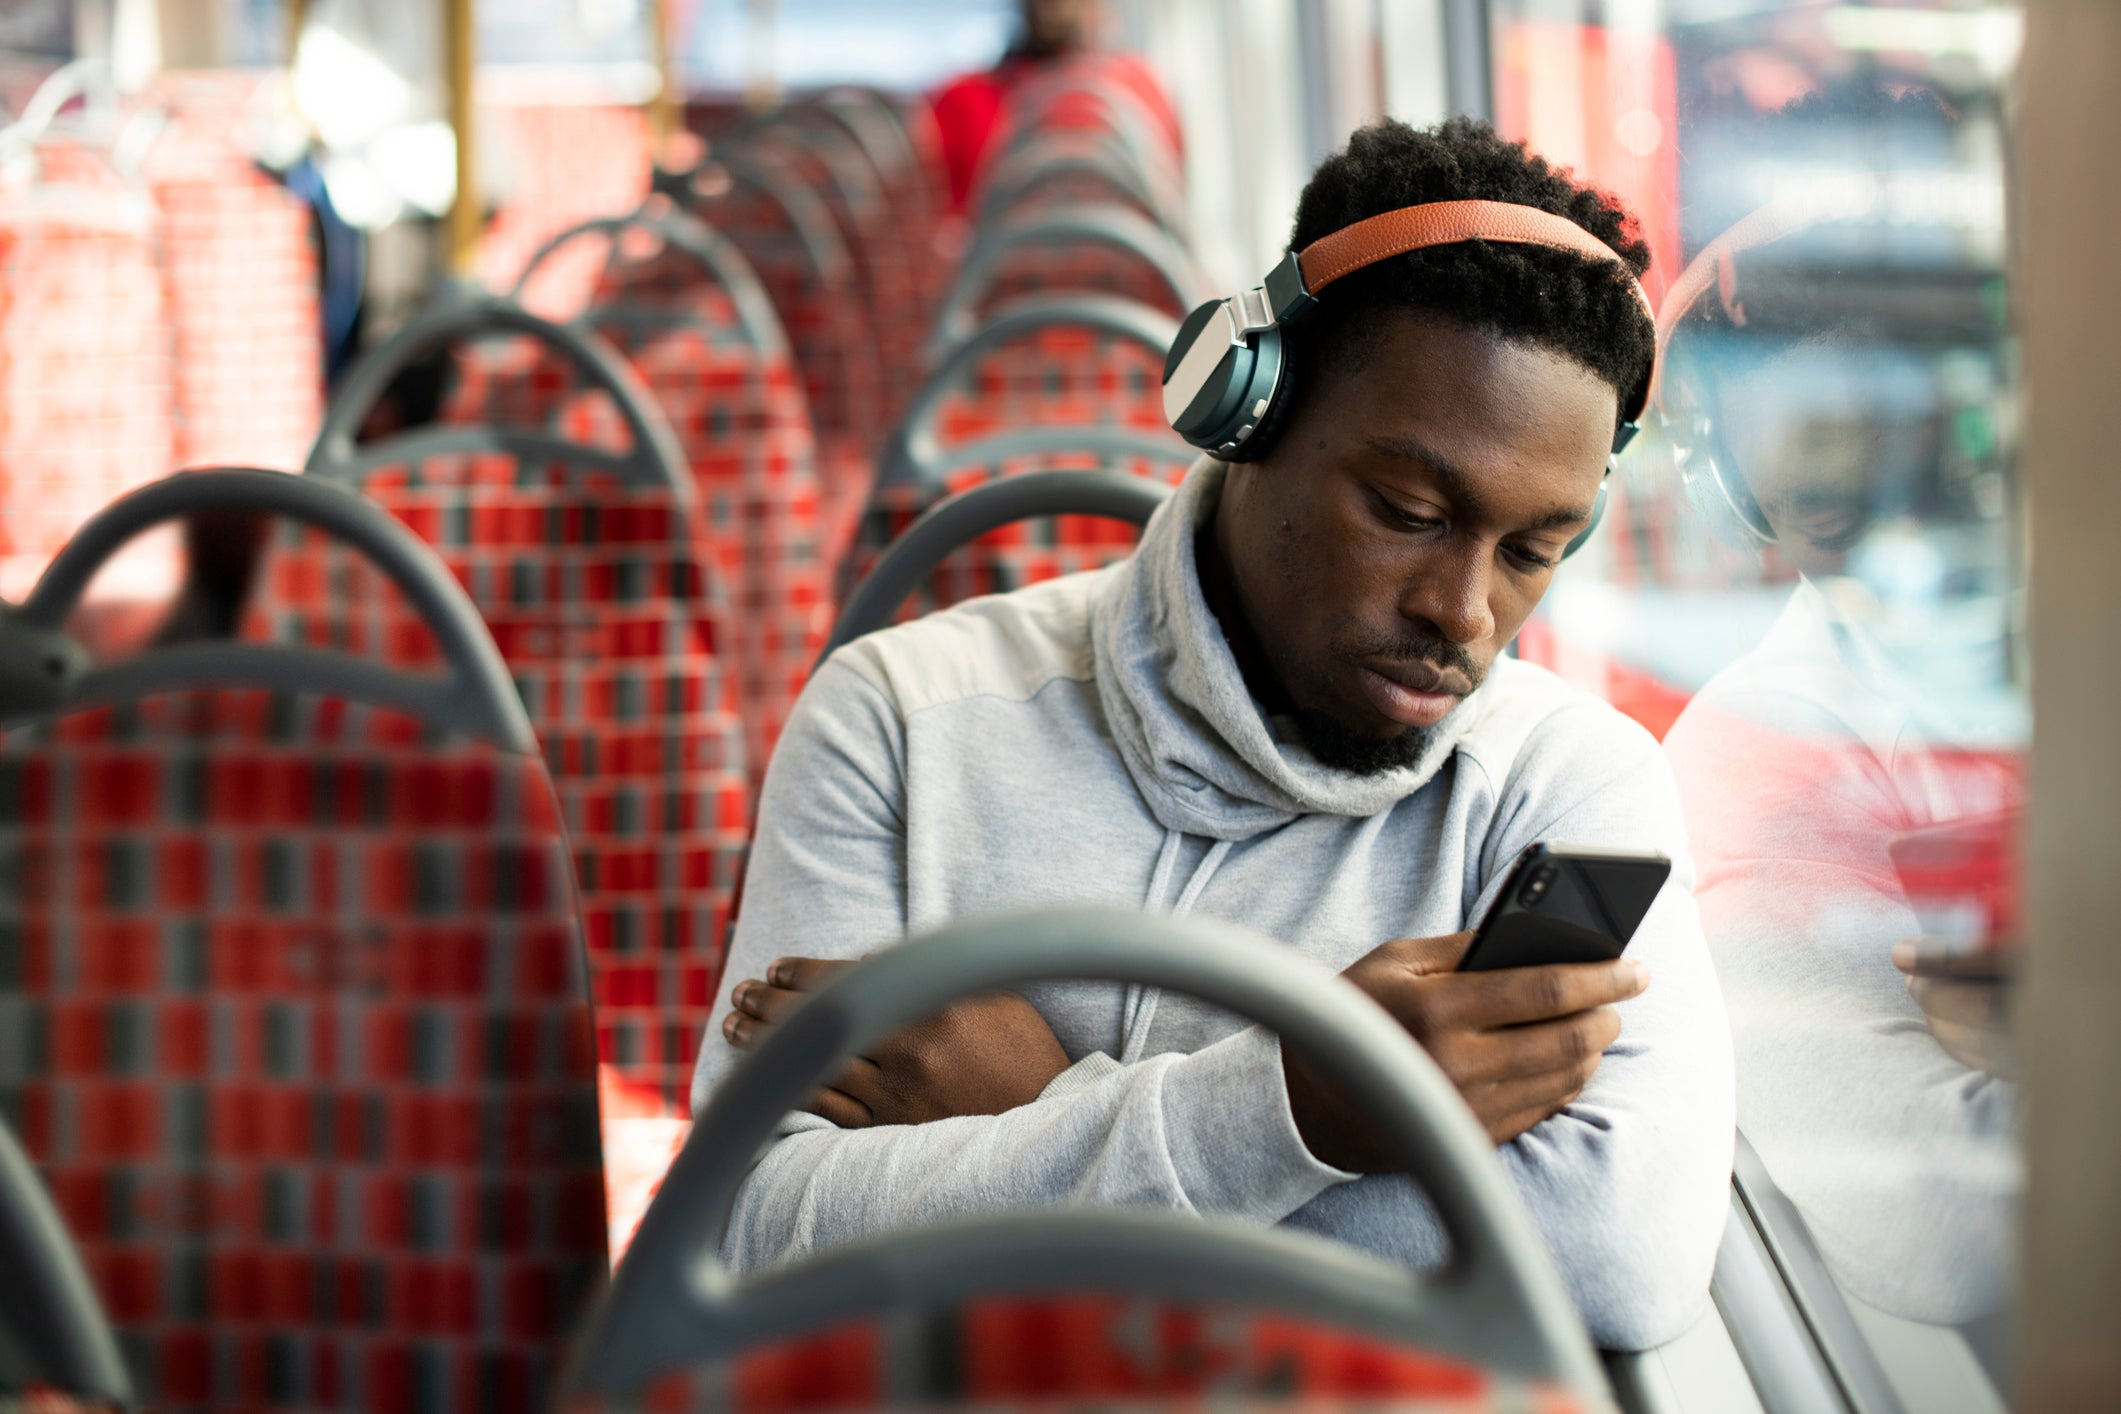 A man riding the bus and listening to music while looking at his phone.